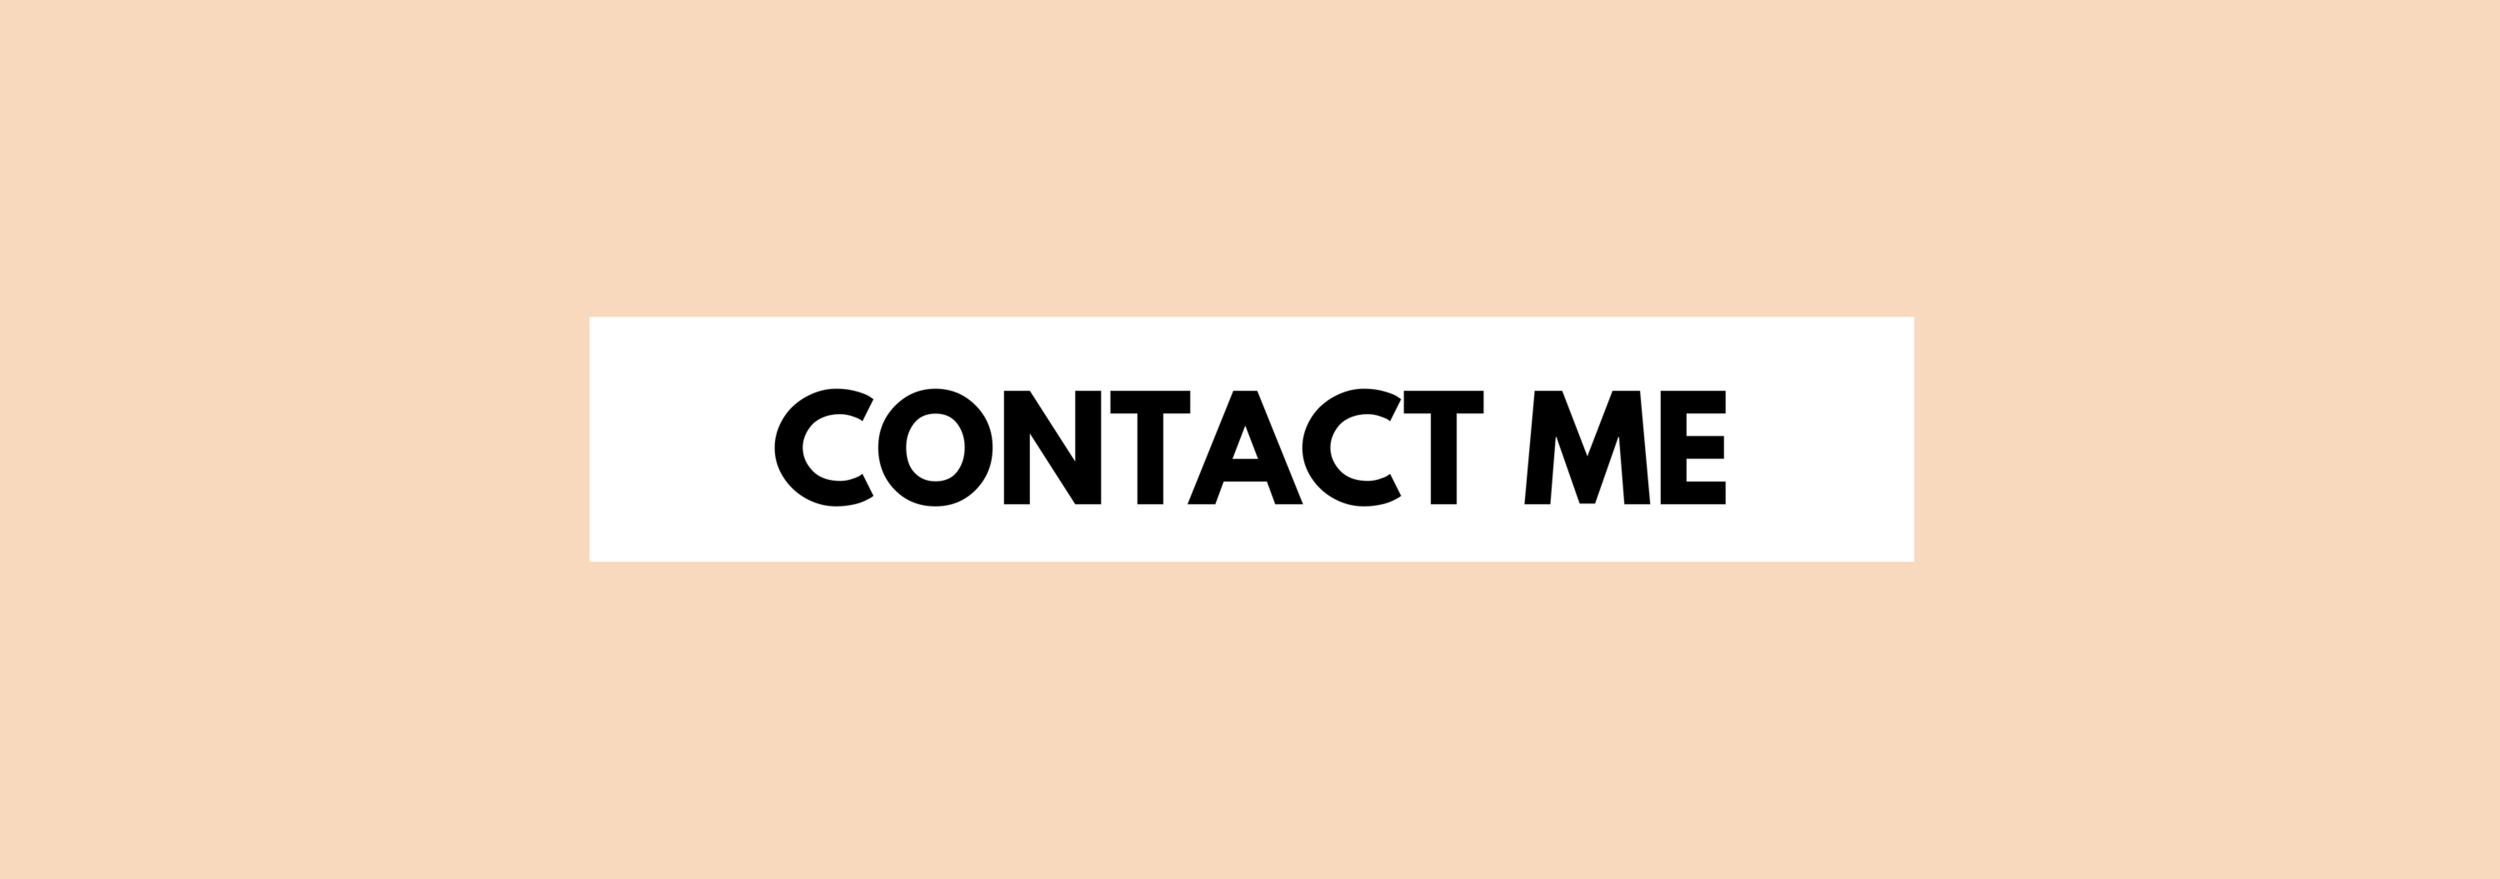 contact banner.png